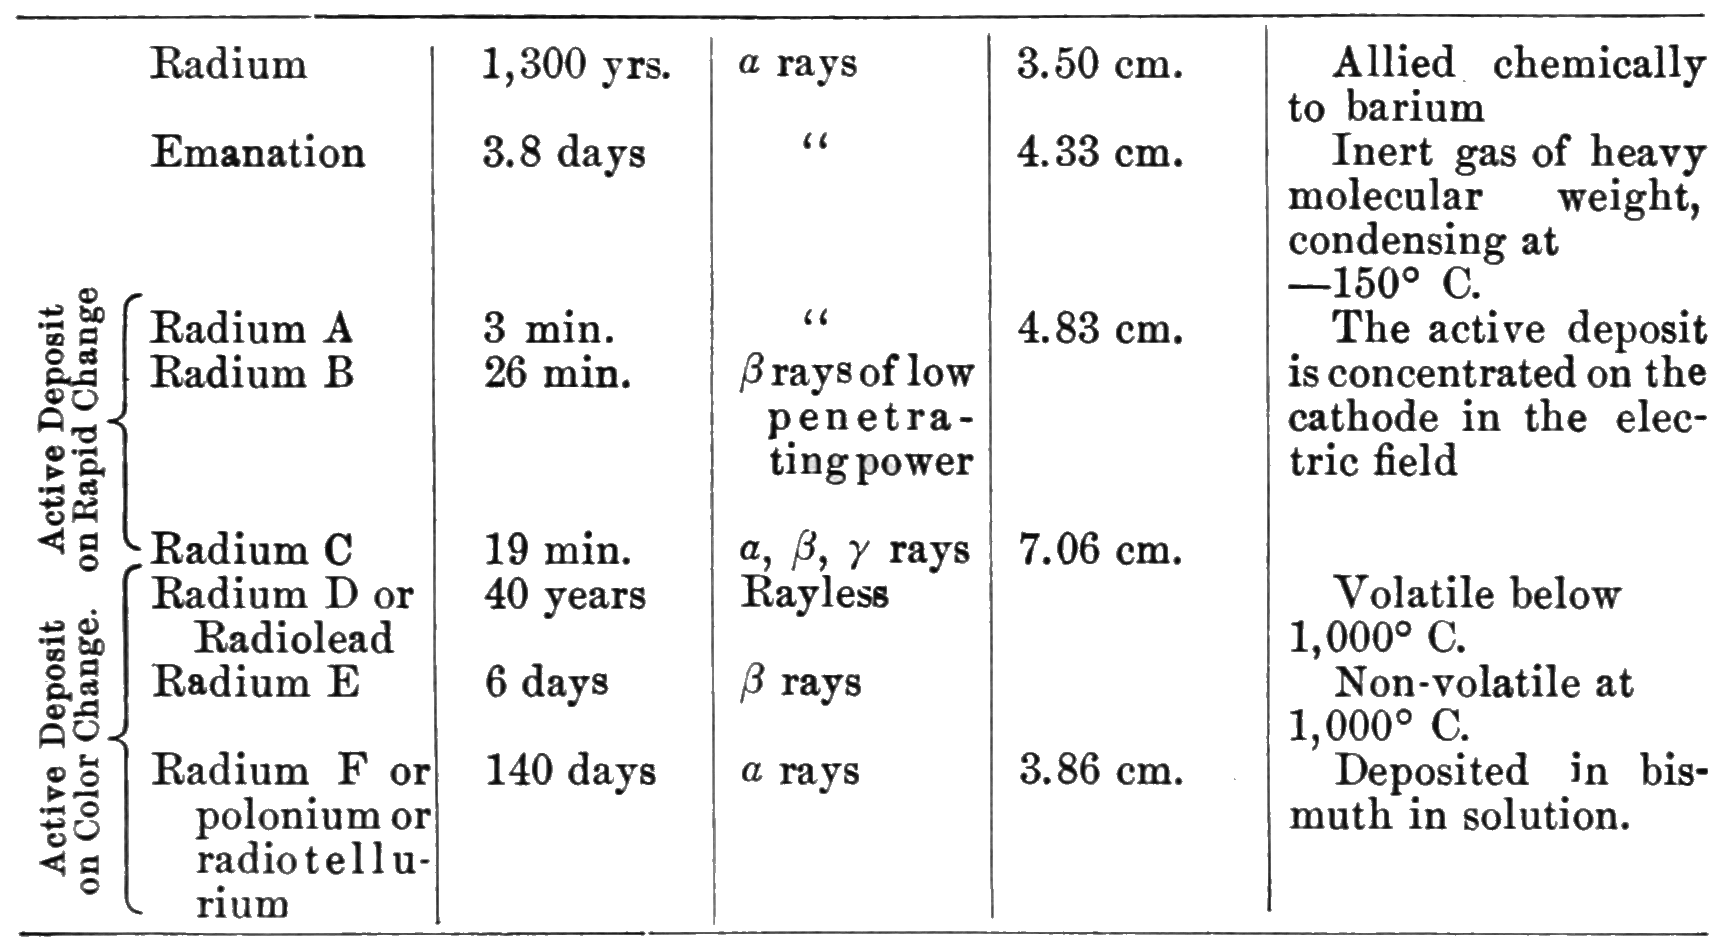 PSM V71 D533 Radioactive decay of radium.png